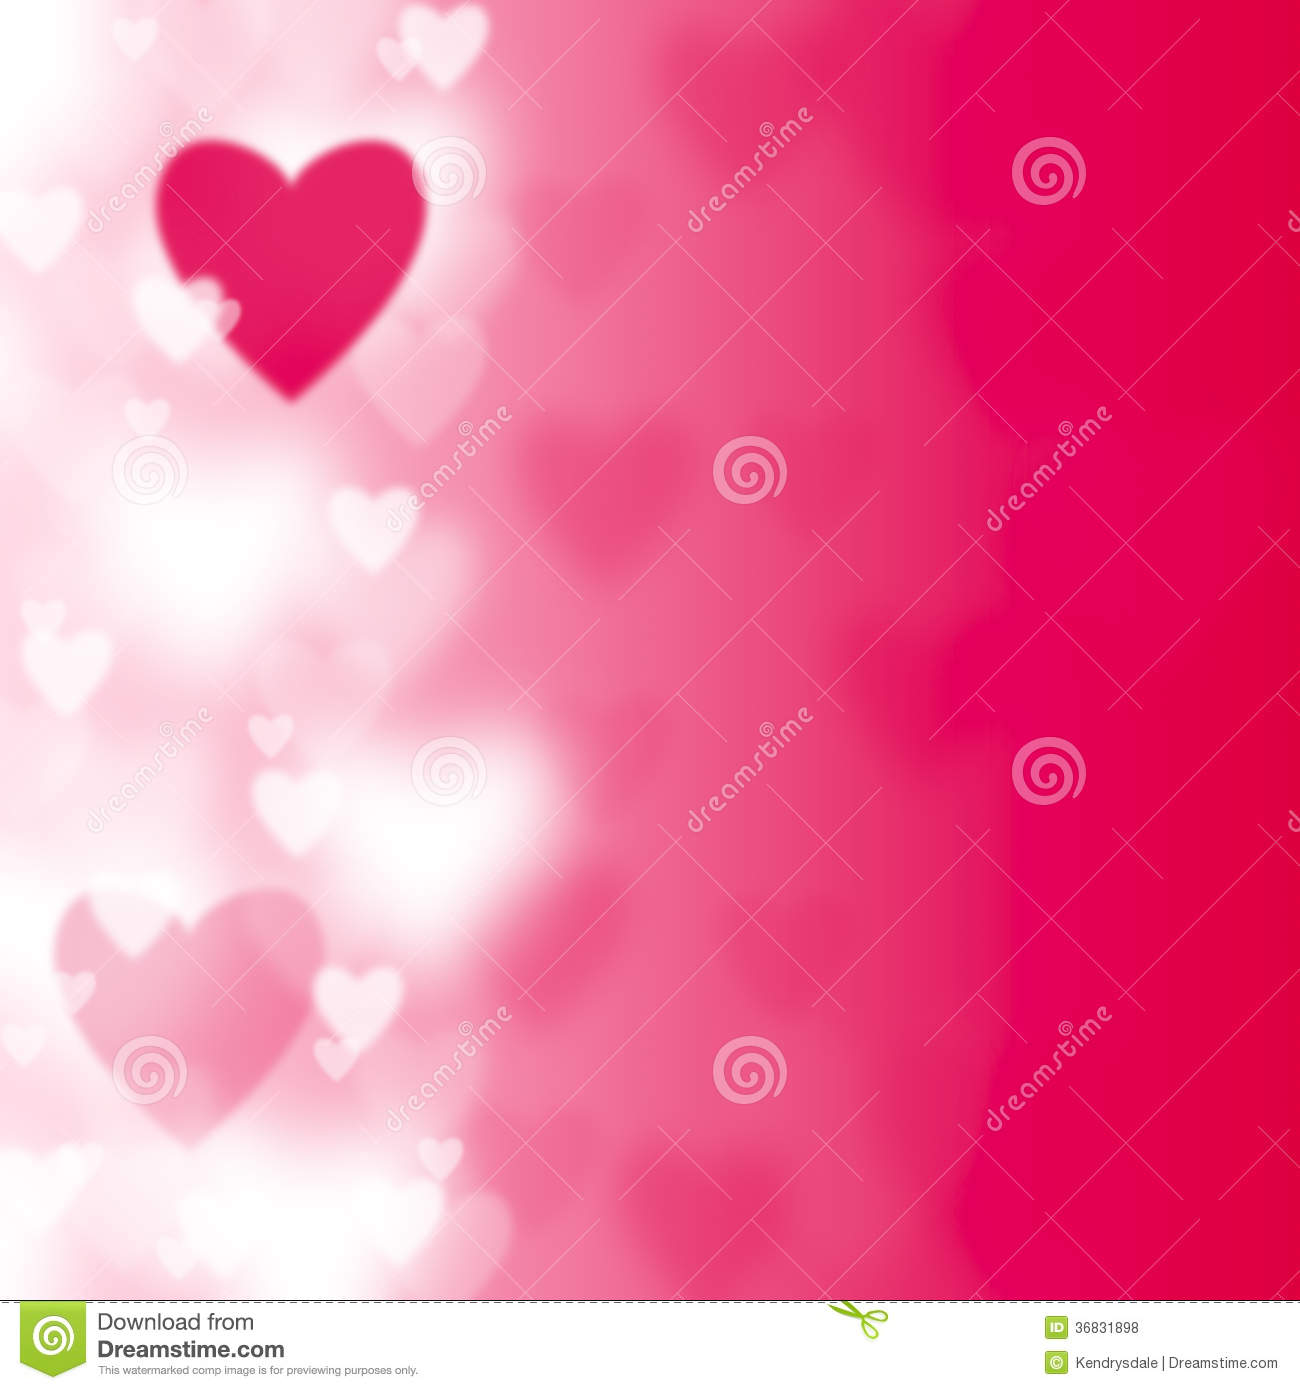 Love Hearts And Background Valentines Or Wedding Vector